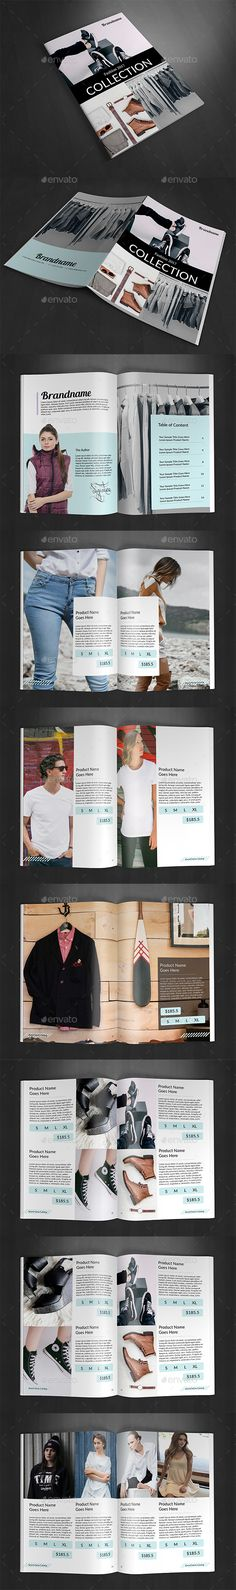 Product Fashion Catalog — InDesign INDD #catalog #print • Download ➝ https://graphicriver.net/item/product-fashion-catalog/19244001?ref=pxcr